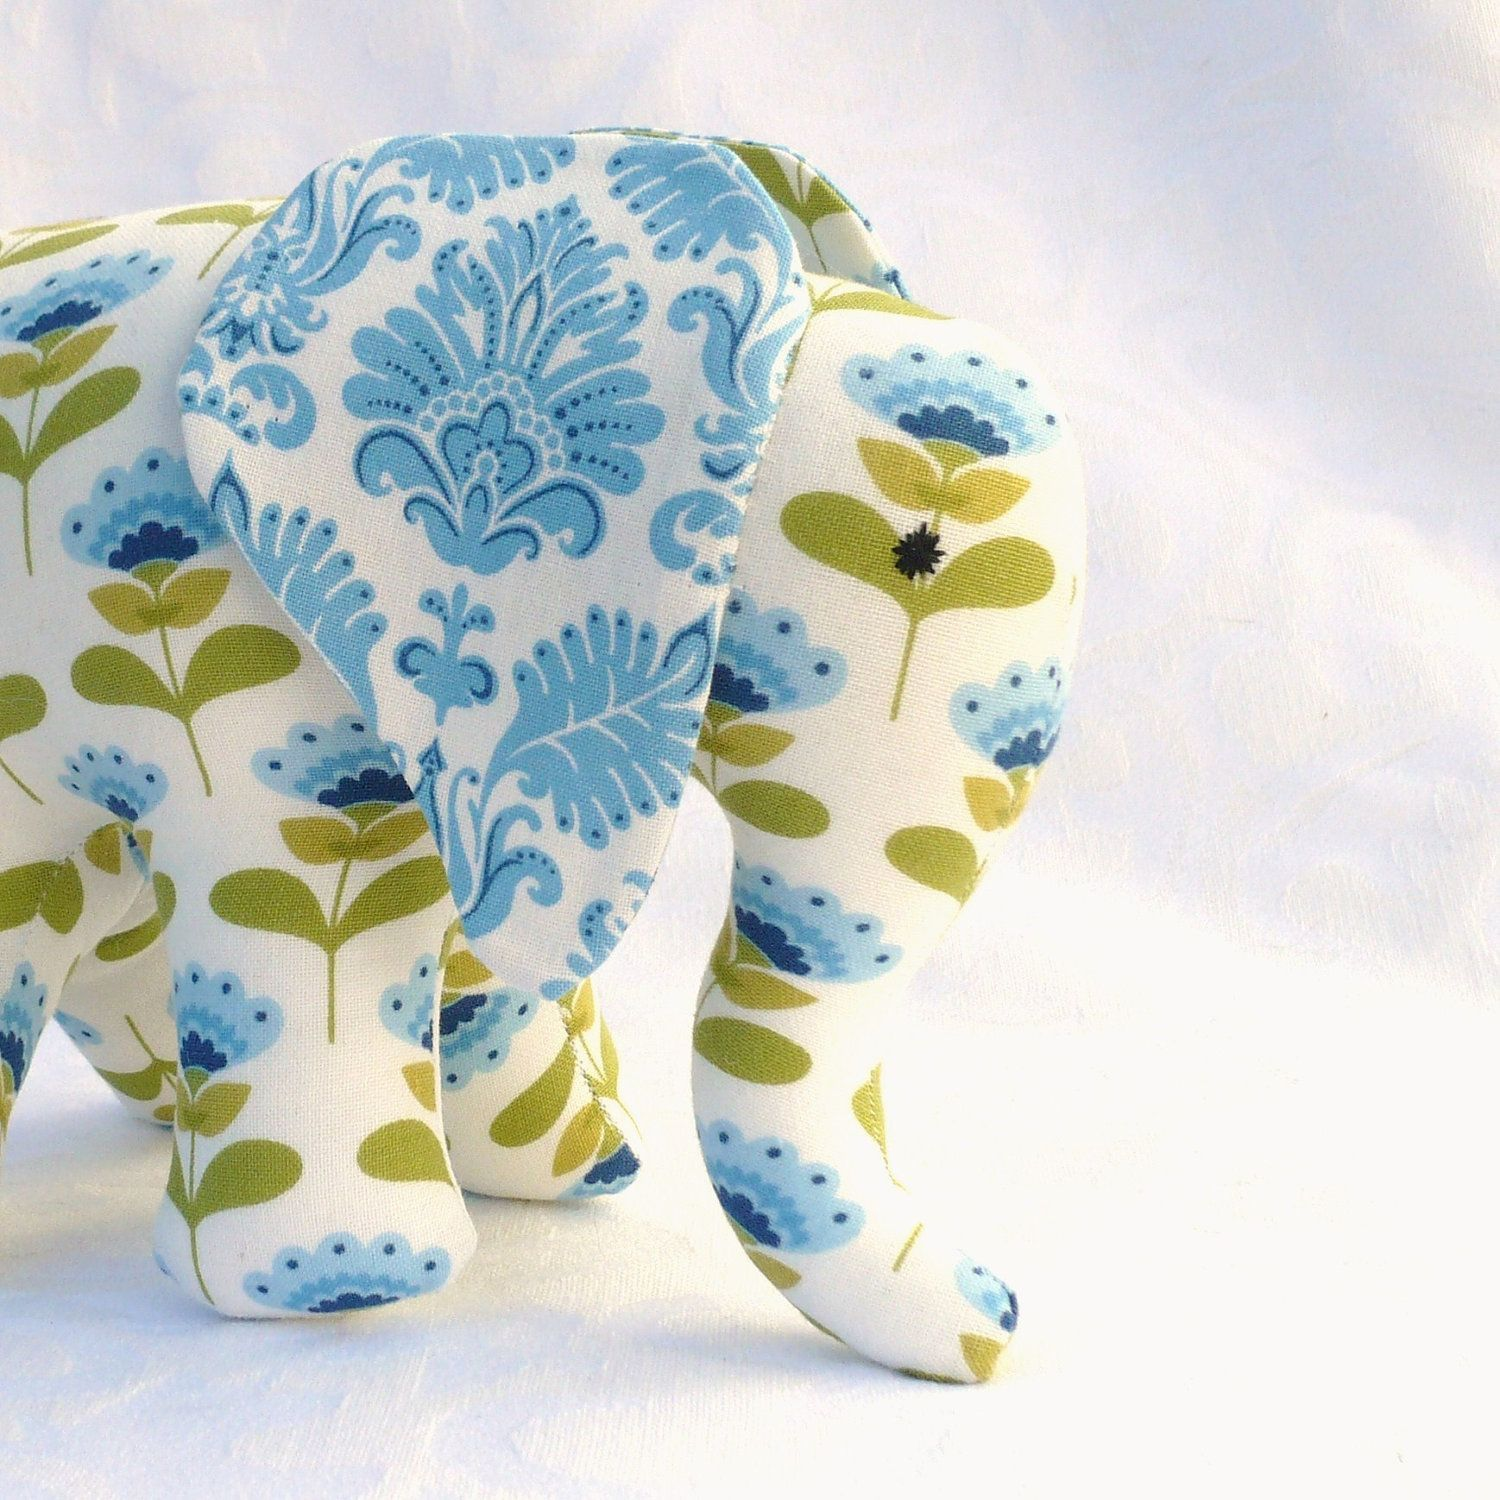 Elephant toy with pacifier tail and sound | Elephant toy ...